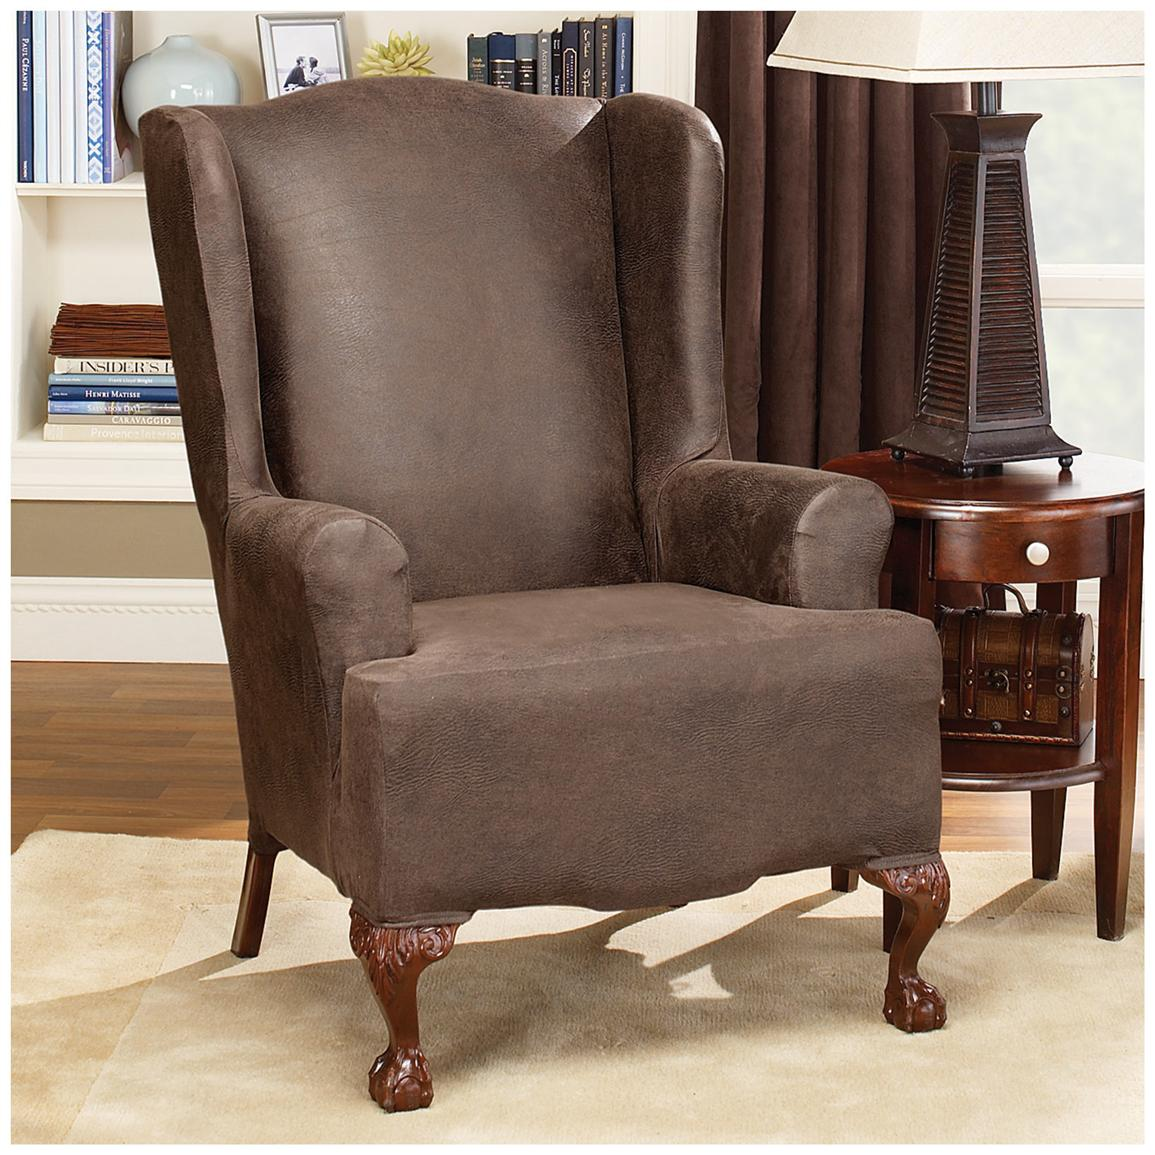 single living room chairs. chic single chair with surefit Stretch Leather Wing Chair Slipcover 581253  plus white rug on wooden Decorating Awesome Sofa With Surefit In Flax For Living